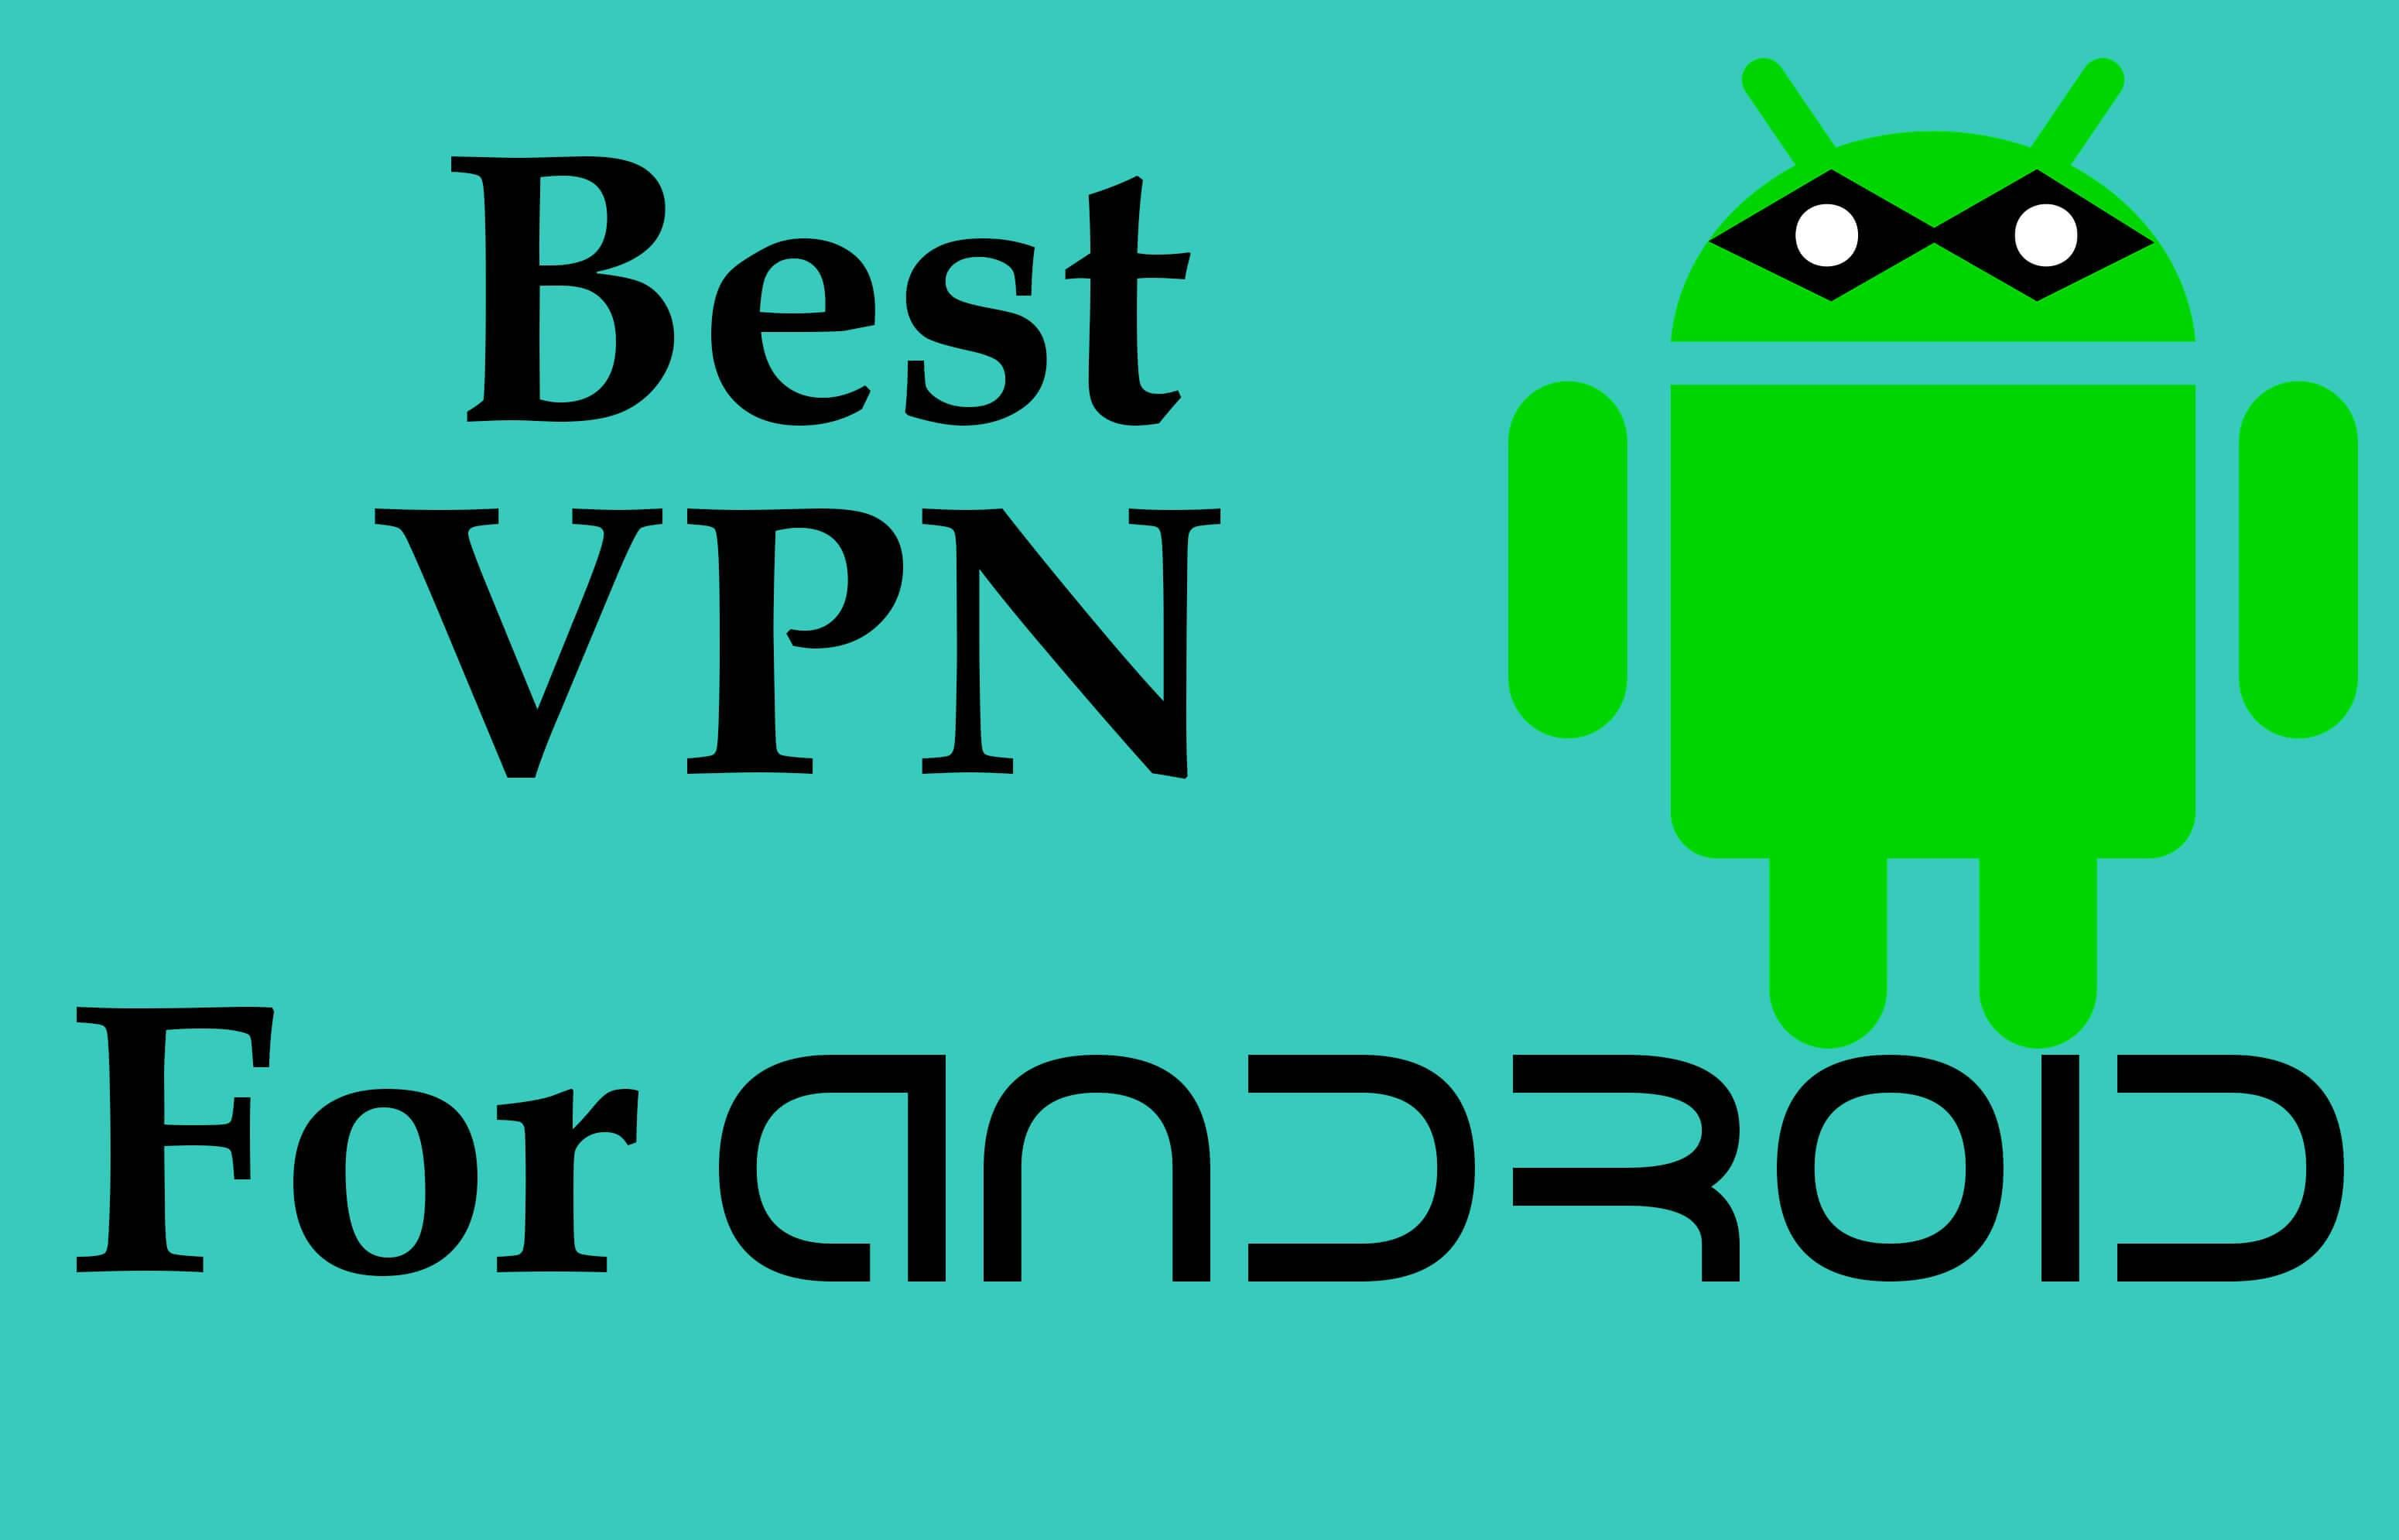 74f9d5e6fe3cad8ef952c8c137db31ec - What's The Best Vpn App For Android